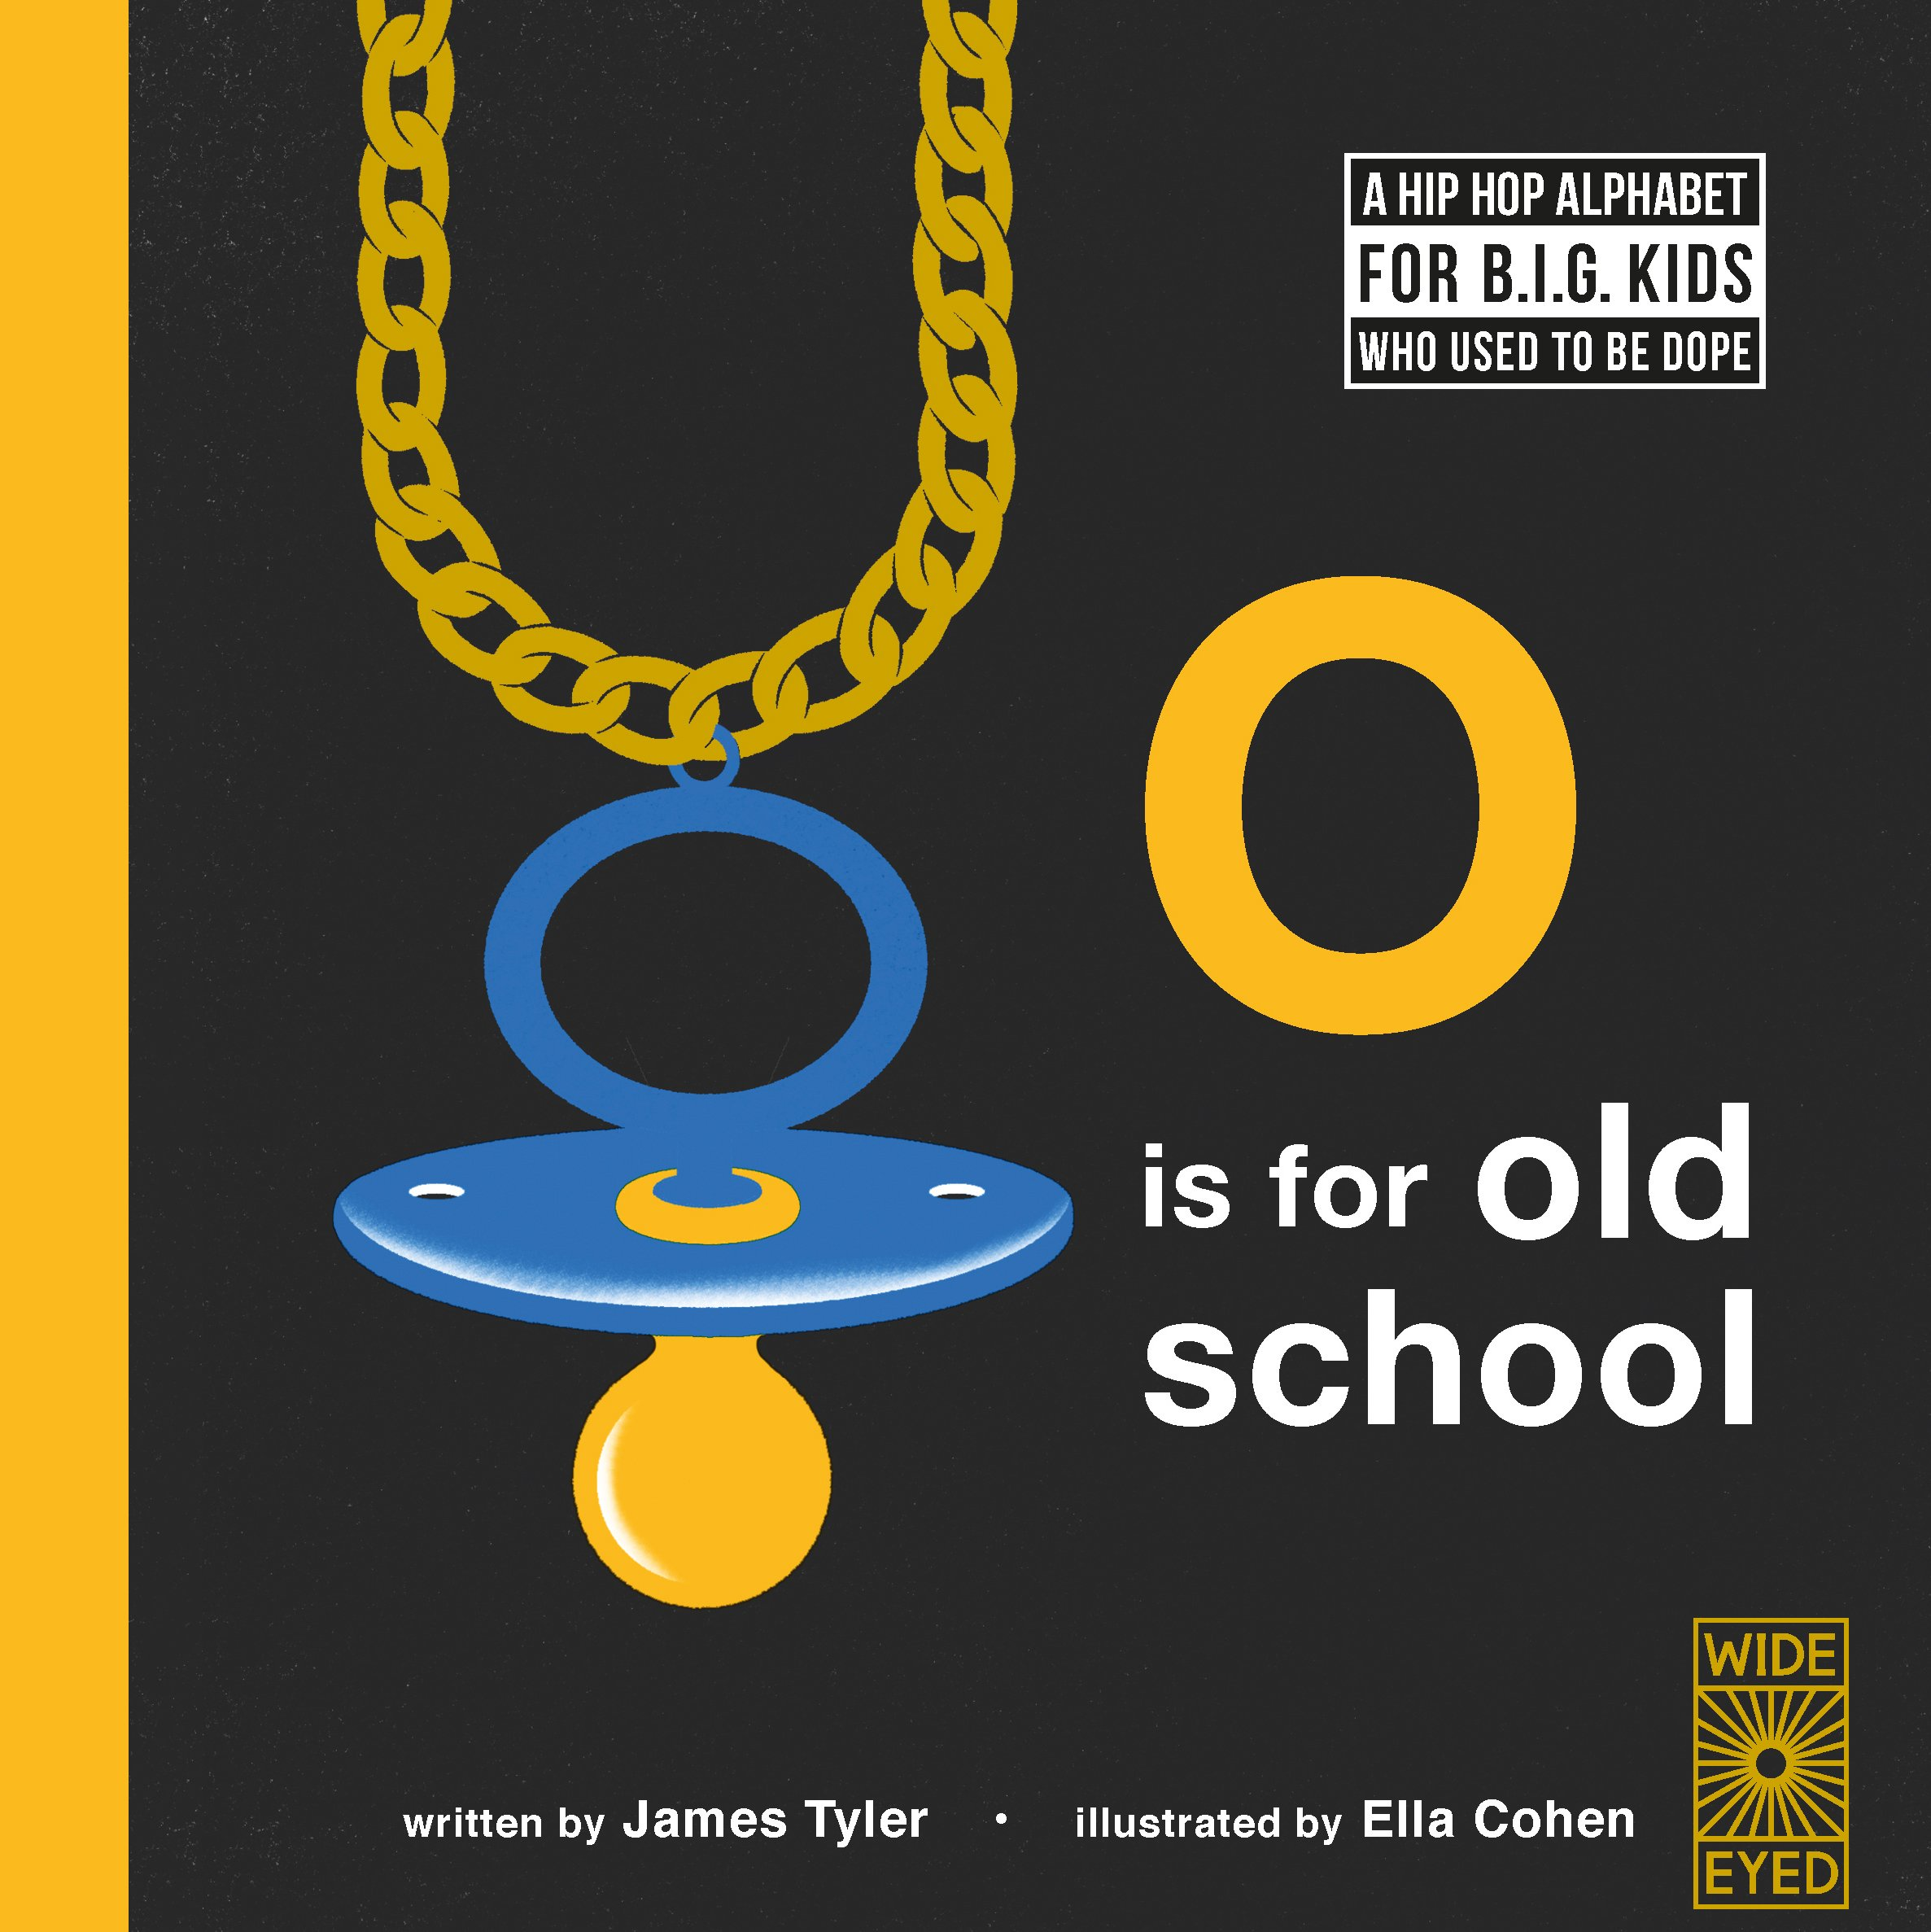 beeaf42b8 O is for Old School  A Hip Hop Alphabet for B.I.G. Kids Who Used to ...